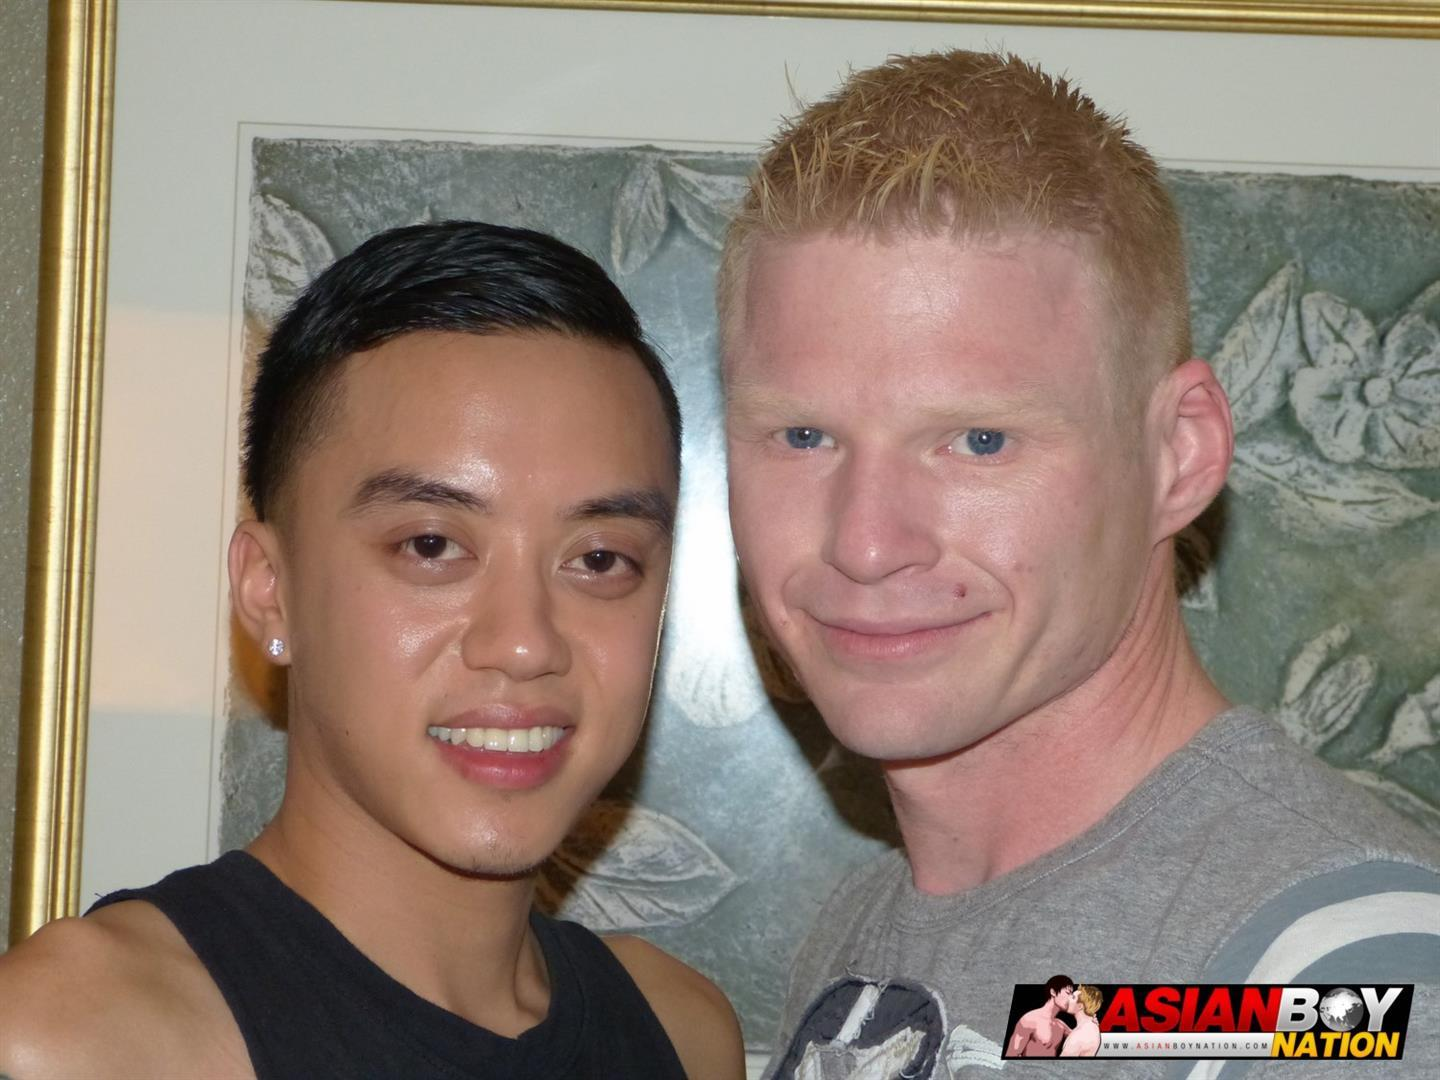 Asian-Boy-Nation-Dax-Masters-and-Coda-Filthy-Red-Head-Ginger-Fucking-An-Asian-Bottom-Amateur-Gay-Porn-16 Asian Boy Gets Fucked By His Ginger Boyfriends Thick Cock